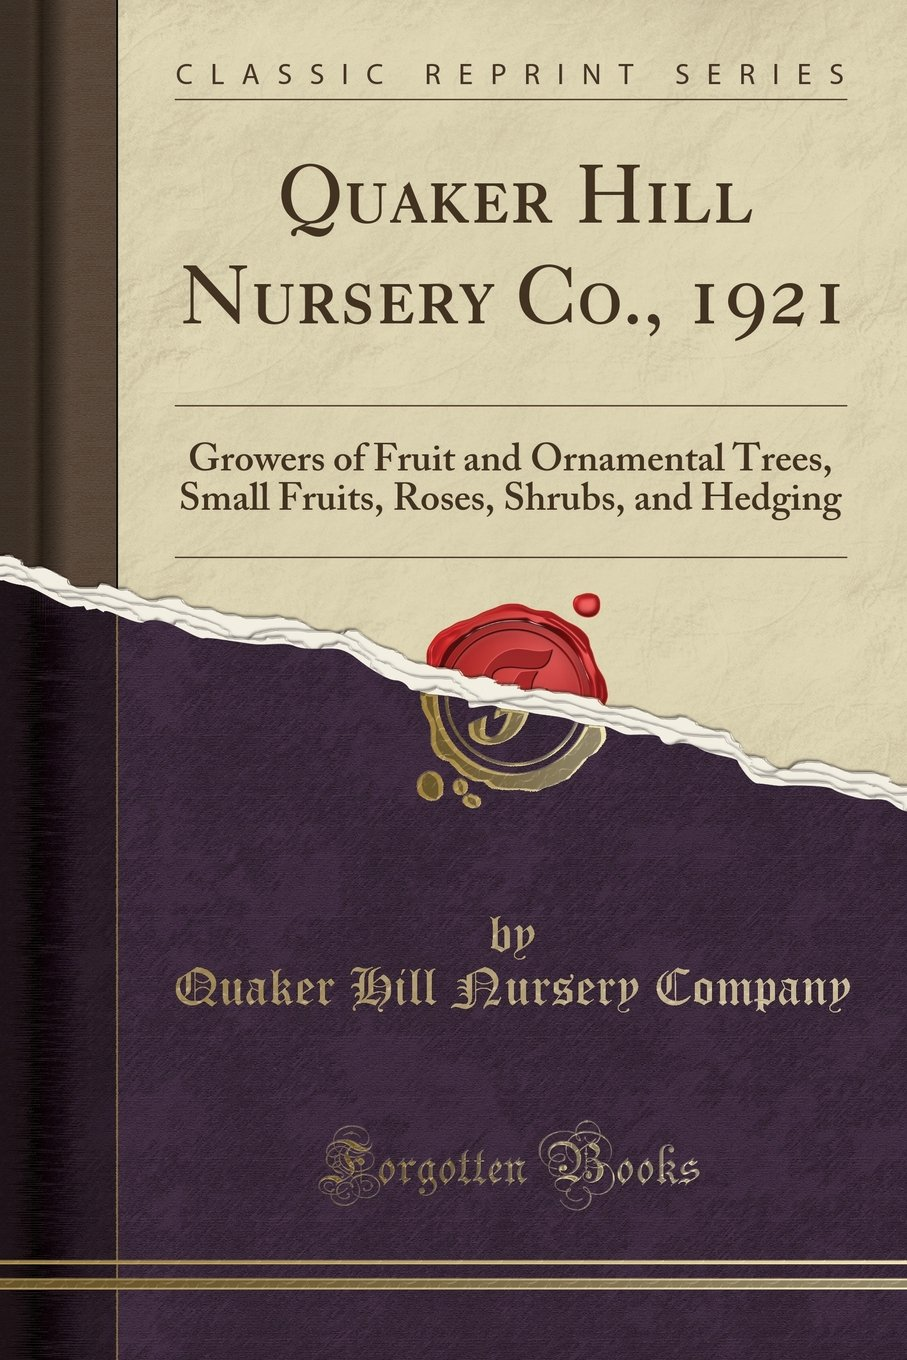 Quaker Hill Nursery Co., 1921: Growers of Fruit and Ornamental Trees, Small Fruits, Roses, Shrubs, and Hedging (Classic Reprint) ebook